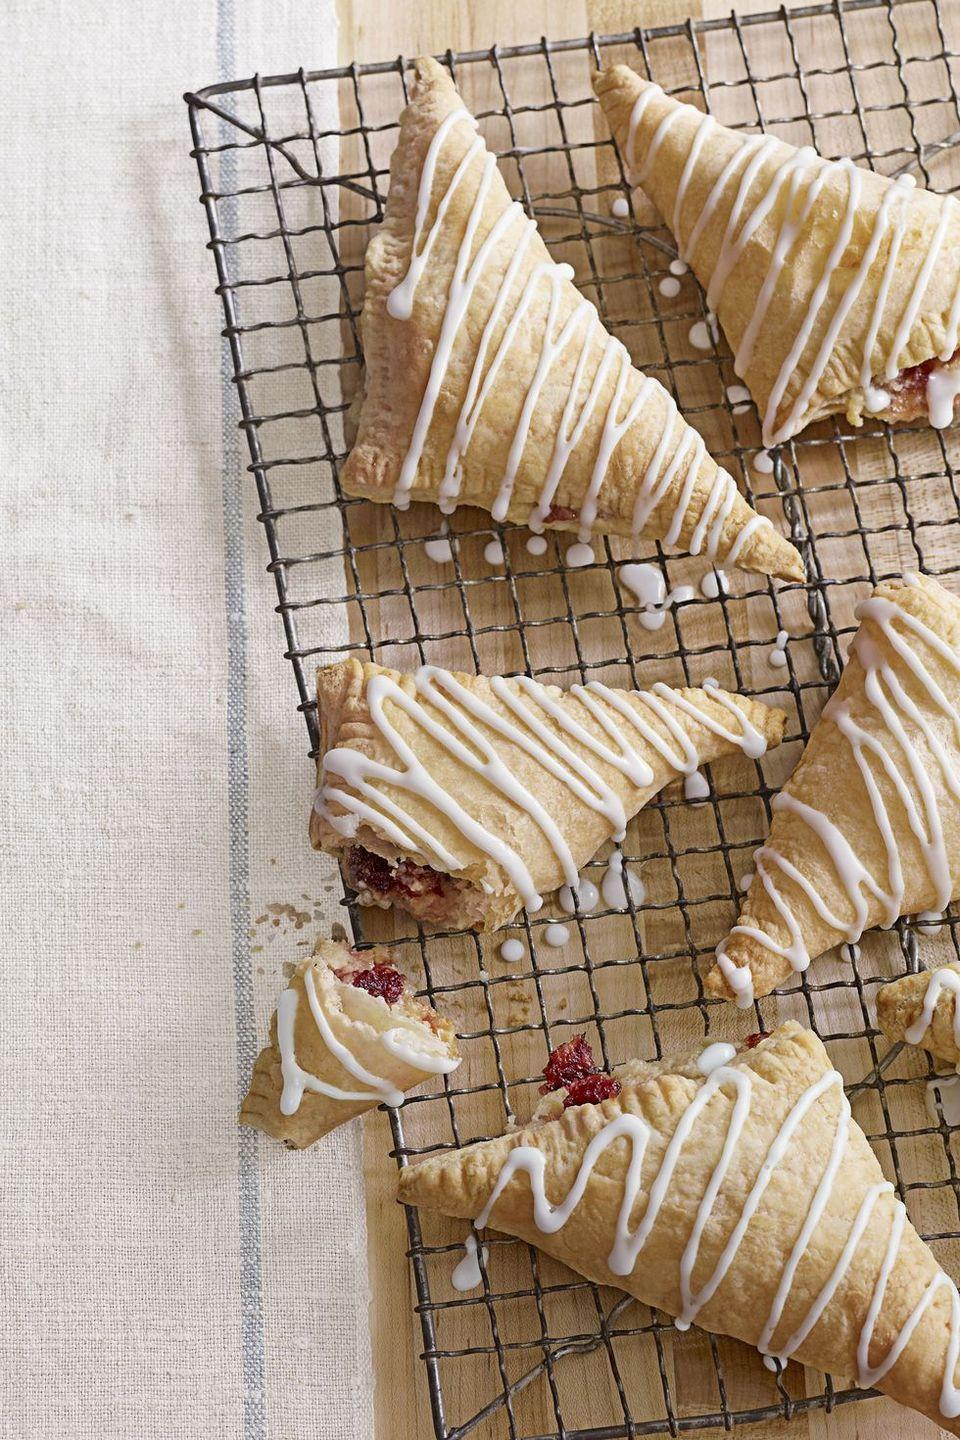 "<p>It's time we stop relegating cranberry sauce to the edge of the table (in a small serving bowl, no less). Here, the tart sauce shines as the filling of a sinfully sweet puff pastry. </p><p><em><a href=""https://www.goodhousekeeping.com/food-recipes/a11258/cranberry-turnovers-recipe-clx1111/"" rel=""nofollow noopener"" target=""_blank"" data-ylk=""slk:Get the recipe for Cranberry Turnovers »"" class=""link rapid-noclick-resp"">Get the recipe for Cranberry Turnovers »</a></em></p>"